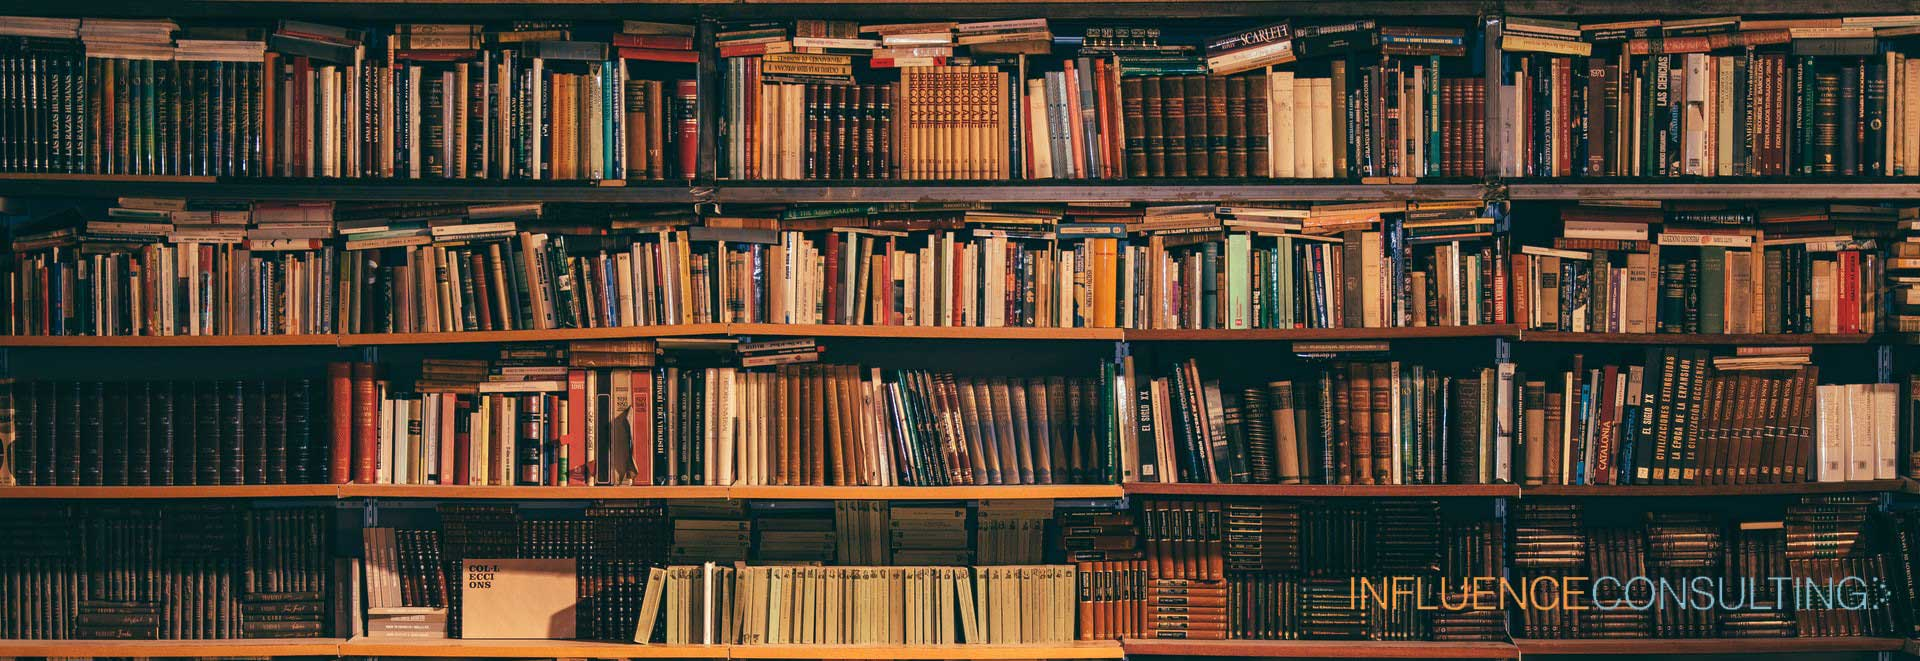 Influence Consulting | Our Document Library